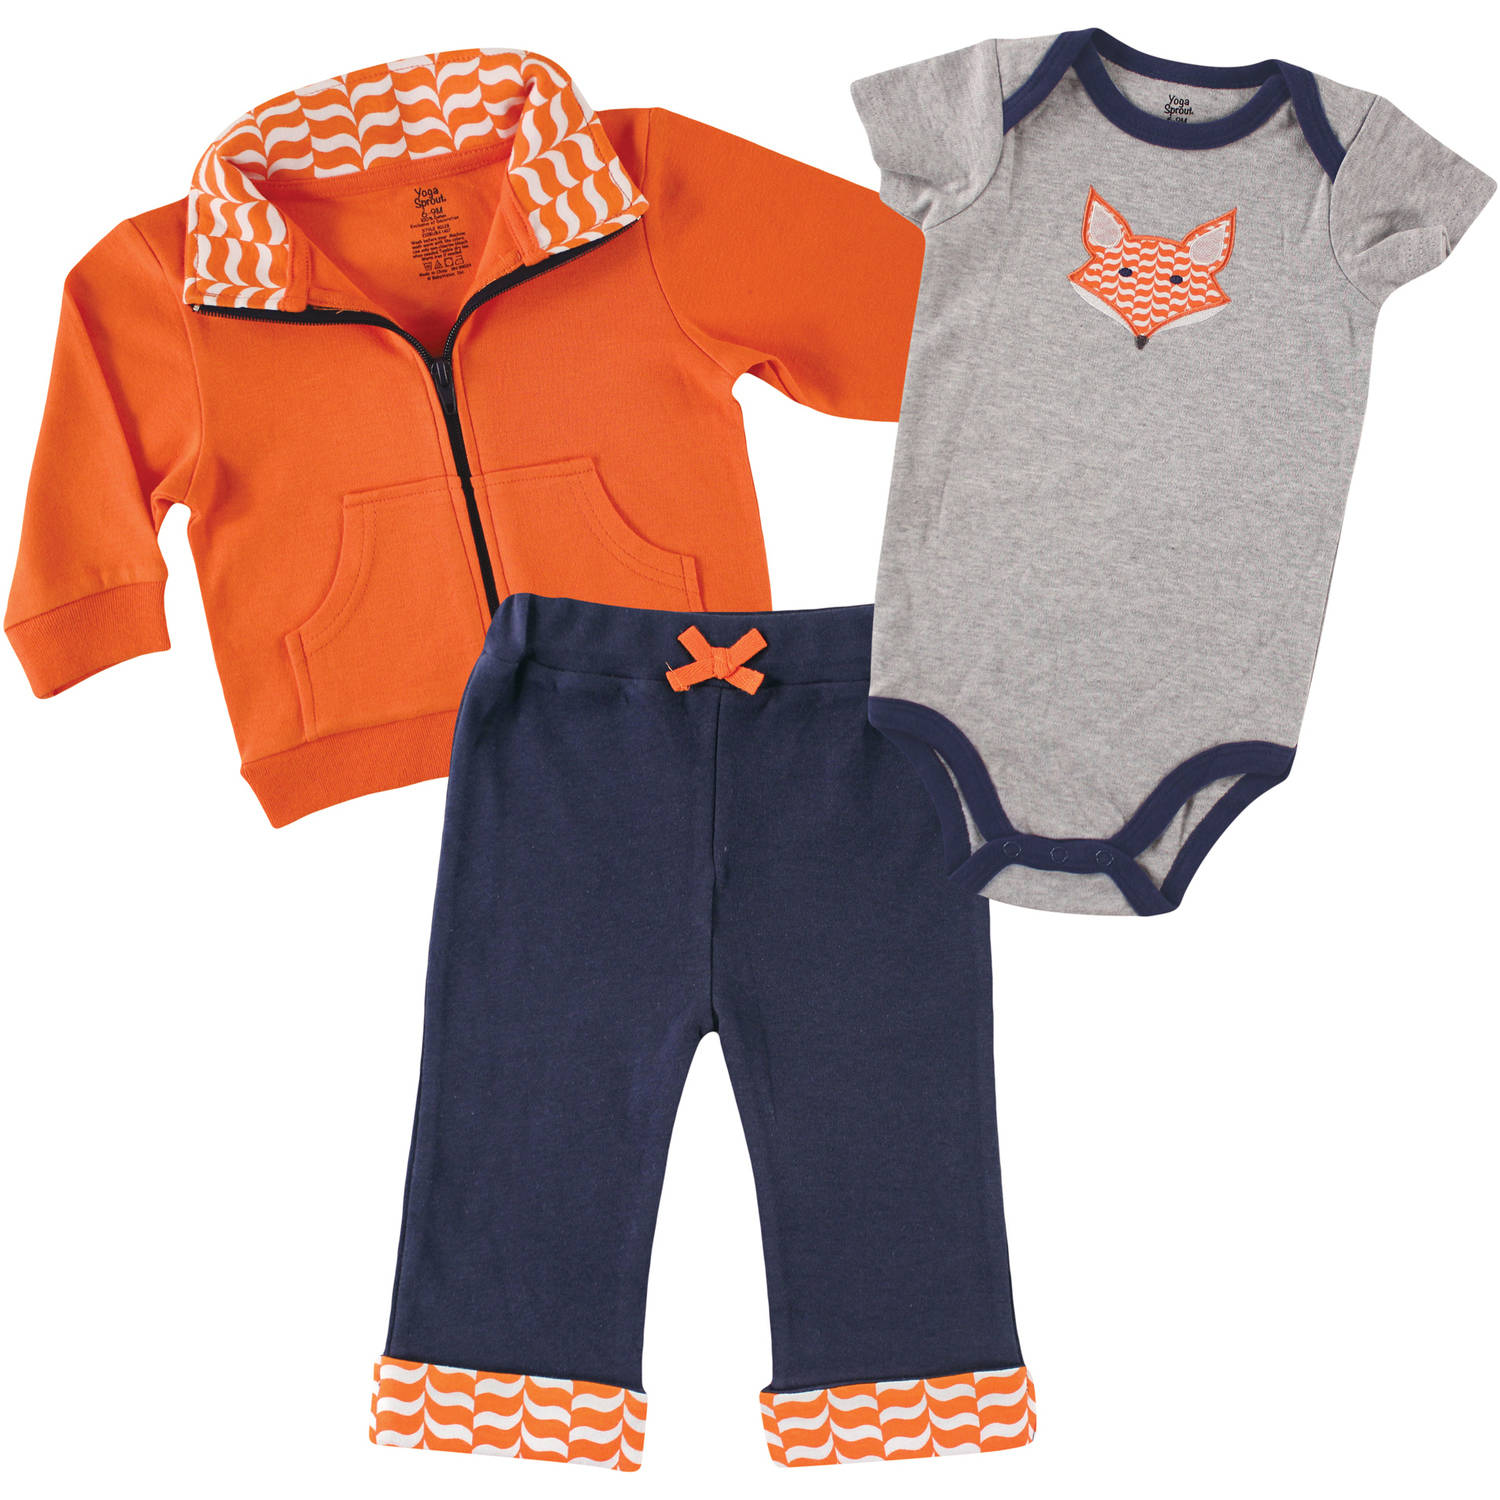 Yoga Sprout Newborn Baby Boys Jacket, Bodysuit & Pant - Fox